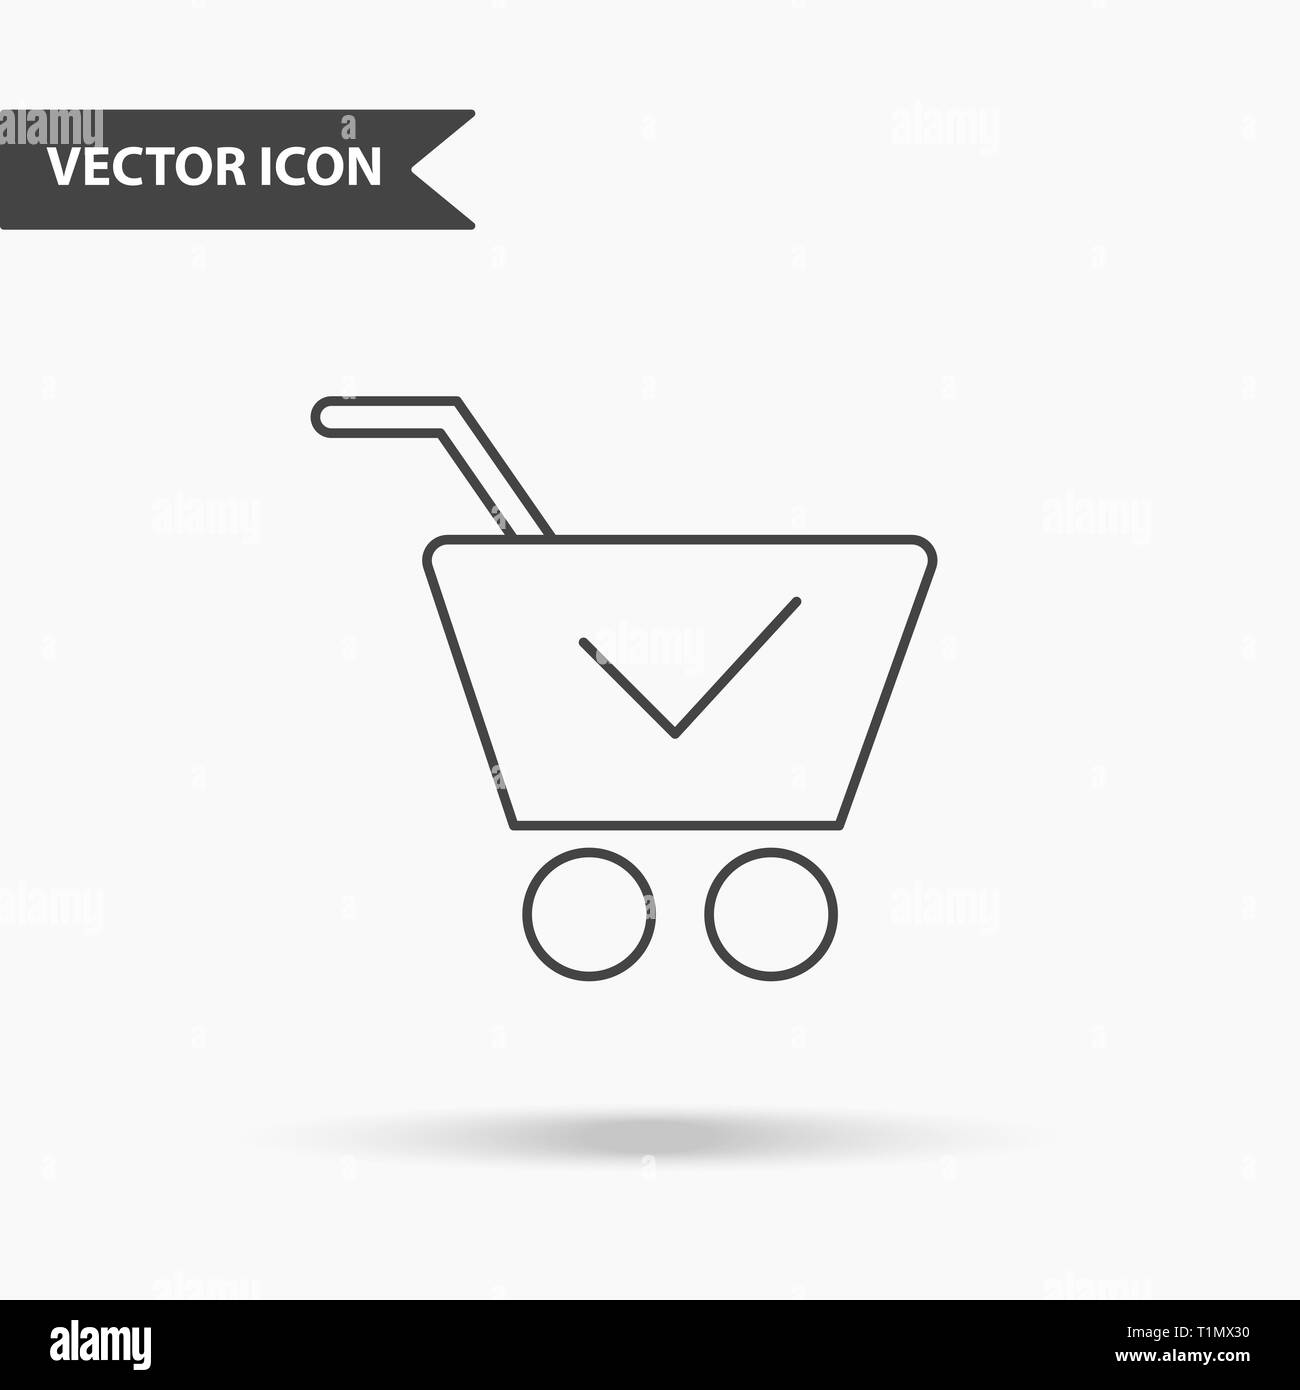 Modern and simple vector illustration of shopping carts icon. Flat image with thin lines for application, interface, presentation, infographics on iso - Stock Image